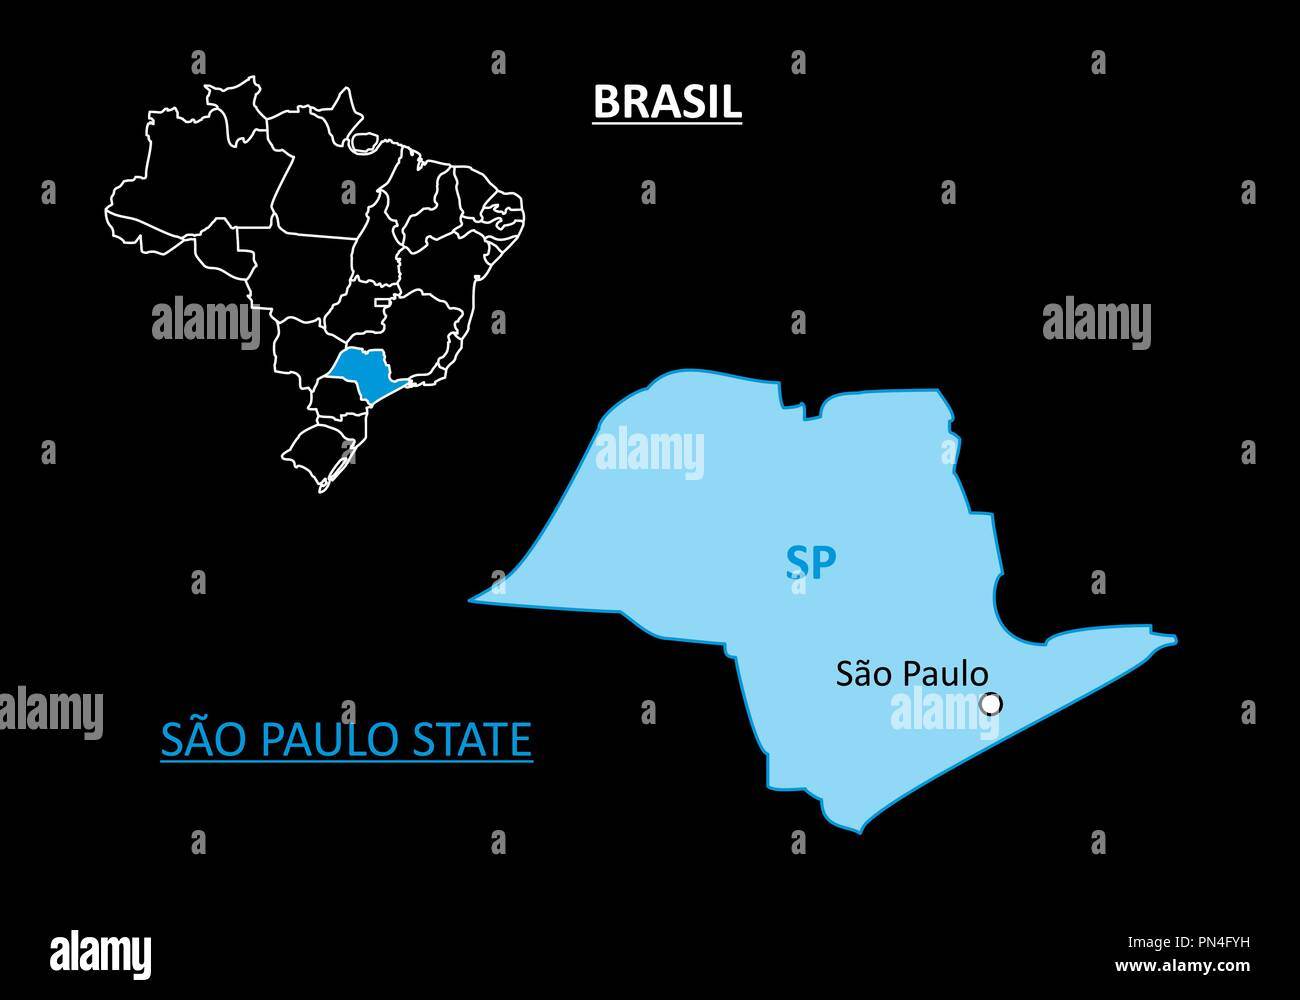 Sao Paulo Map Vector Stockfotos & Sao Paulo Map Vector Bilder - Alamy